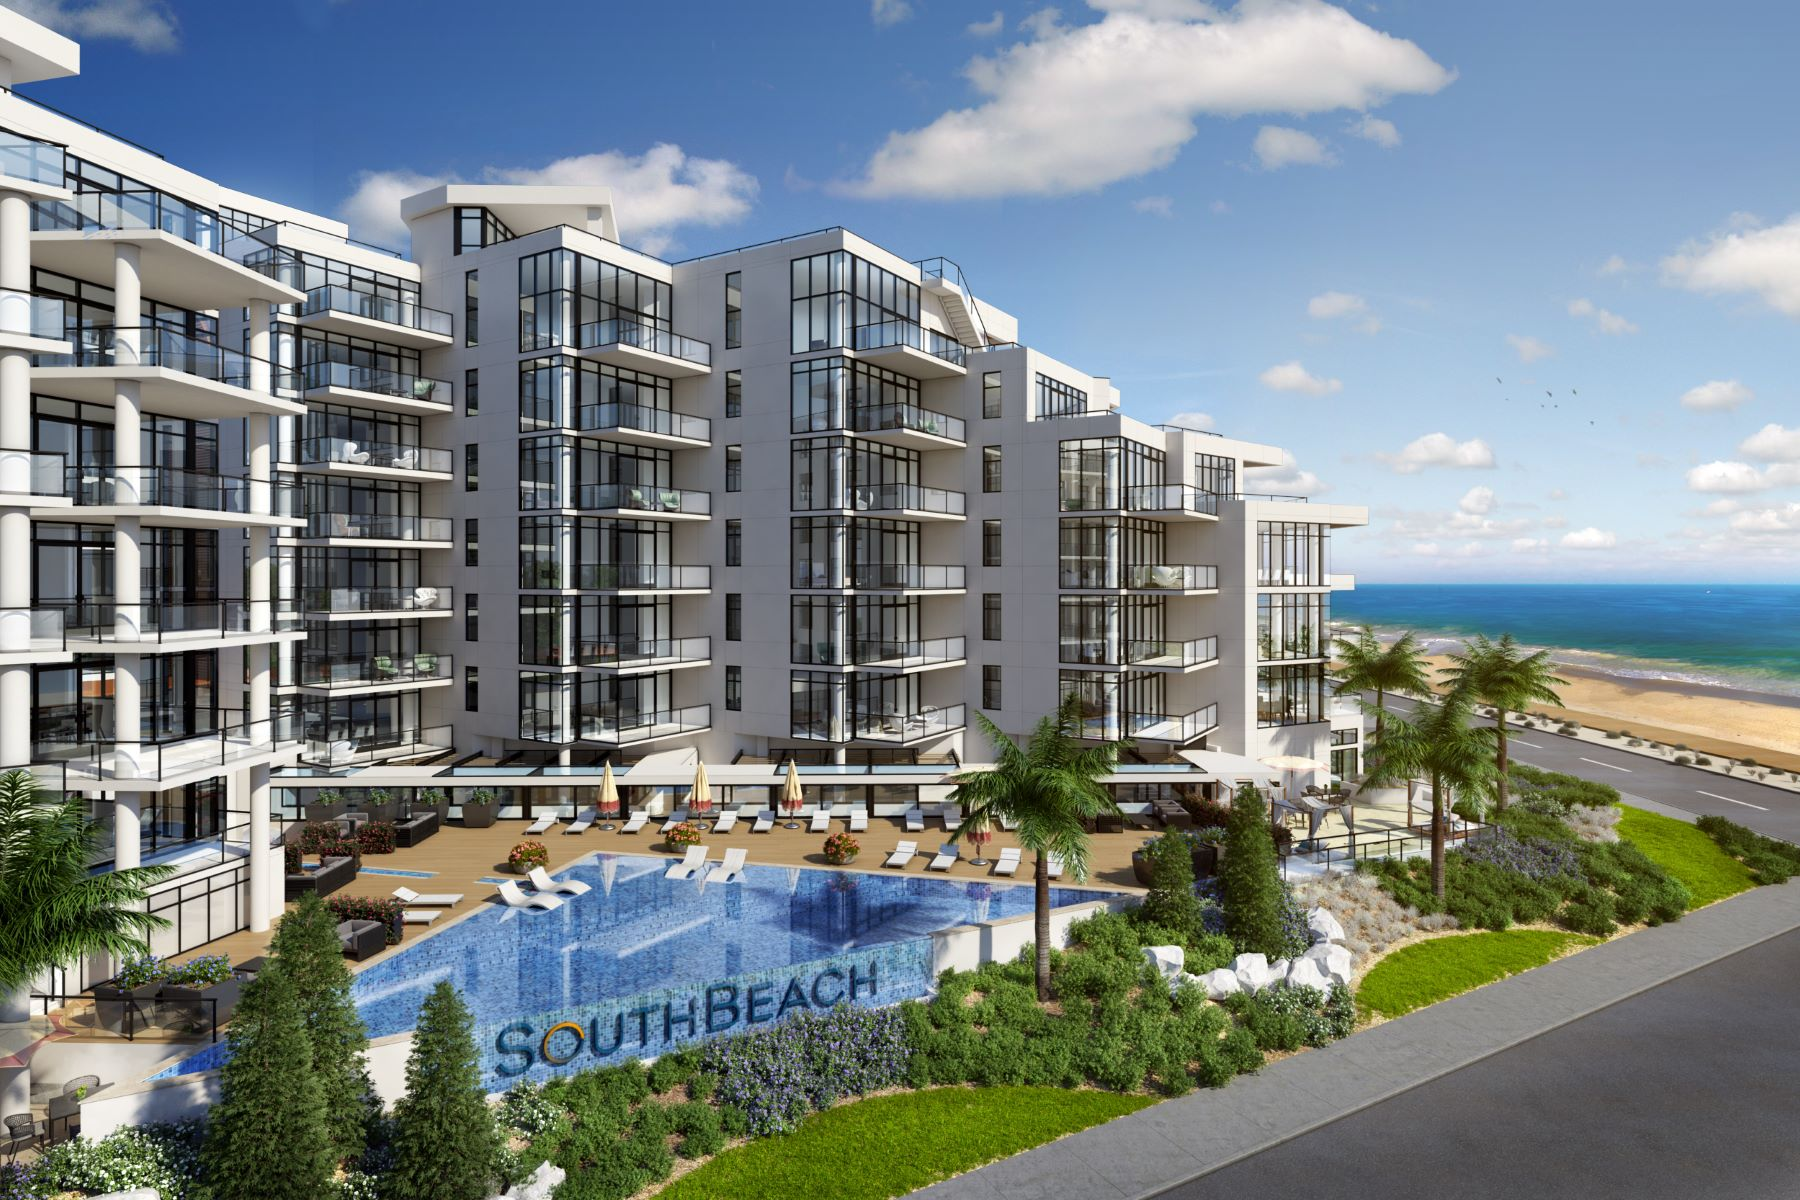 Condominiums للـ Sale في South Beach at Long Branch 350 Ocean Avenue 101, Long Branch, New Jersey 07740 United States